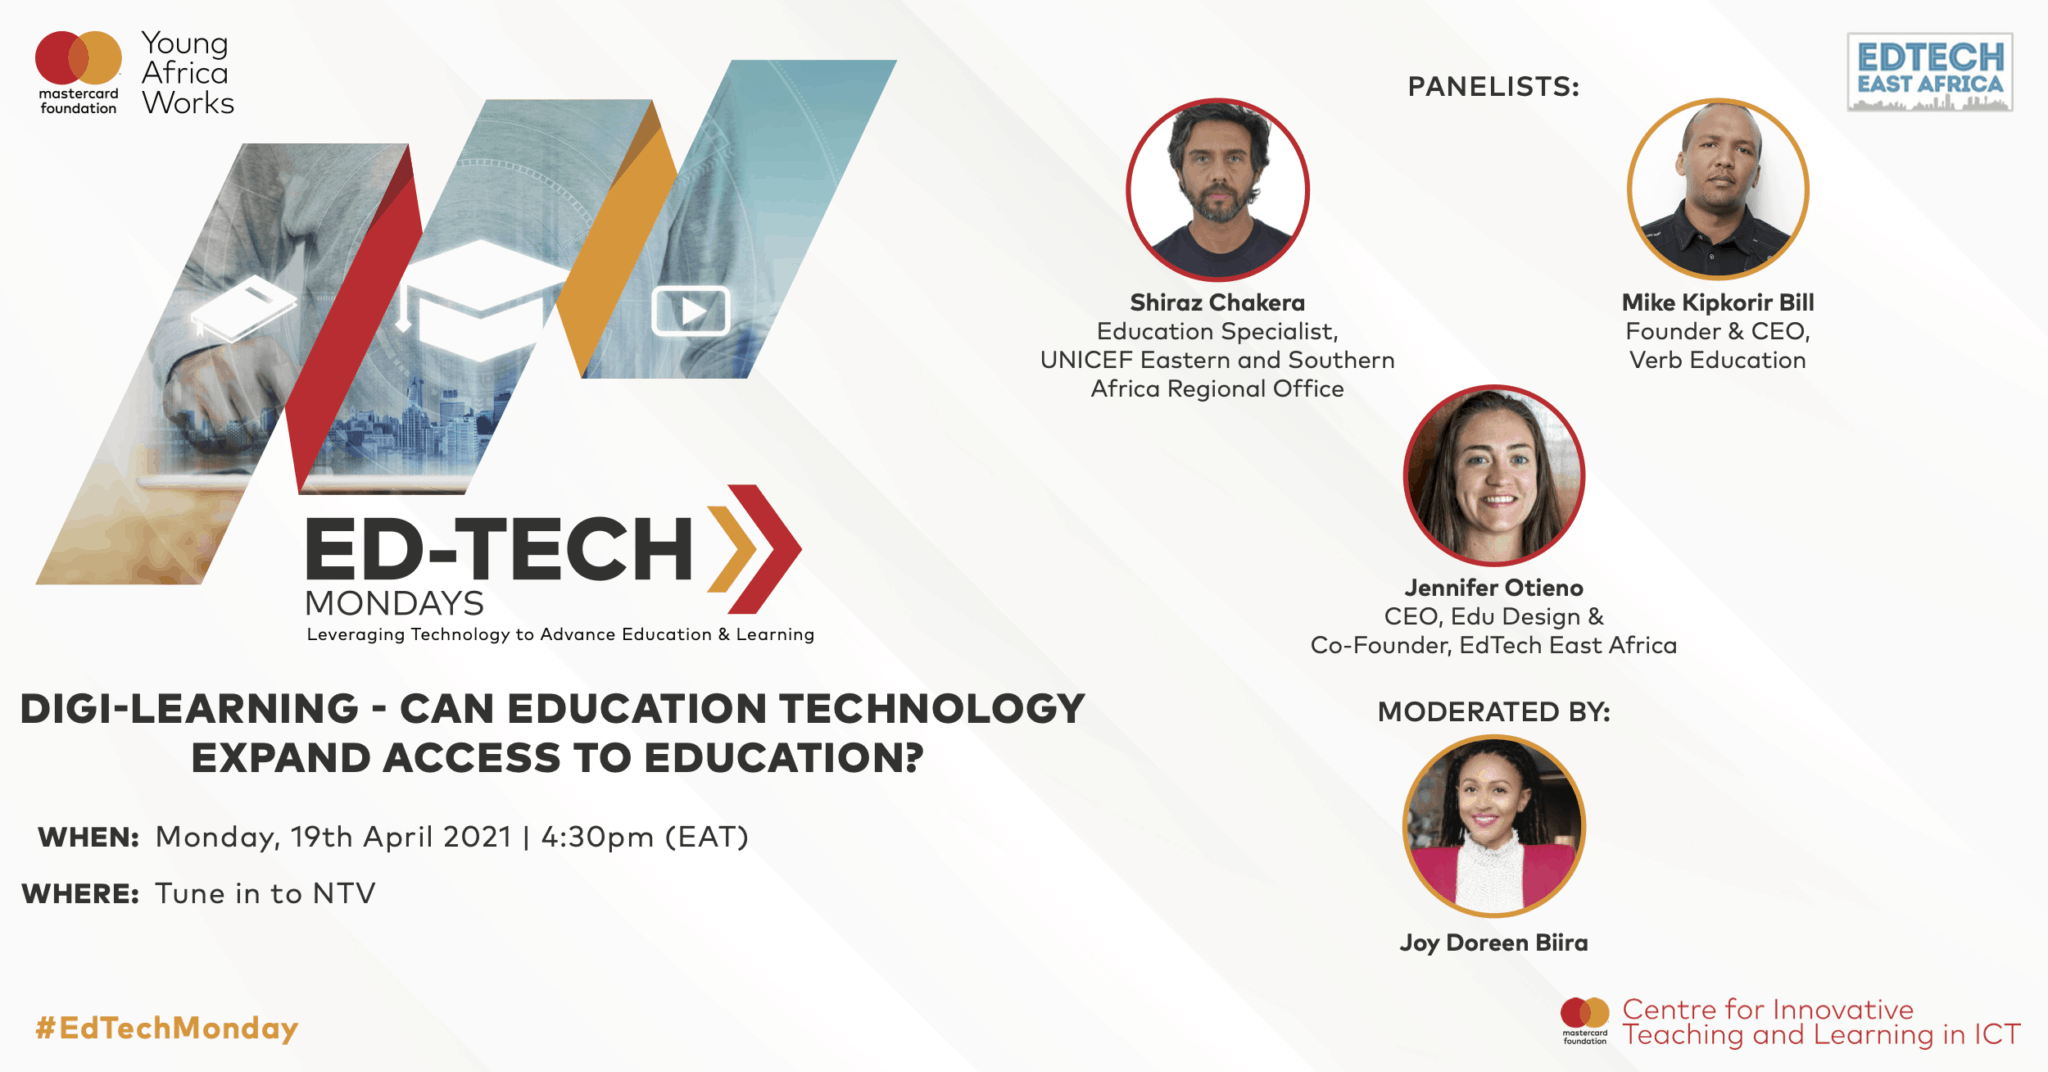 Mastercard Foundation Centre for Innovative Teaching and Learning in ICT launched Ed-Tech Mondays in 2019